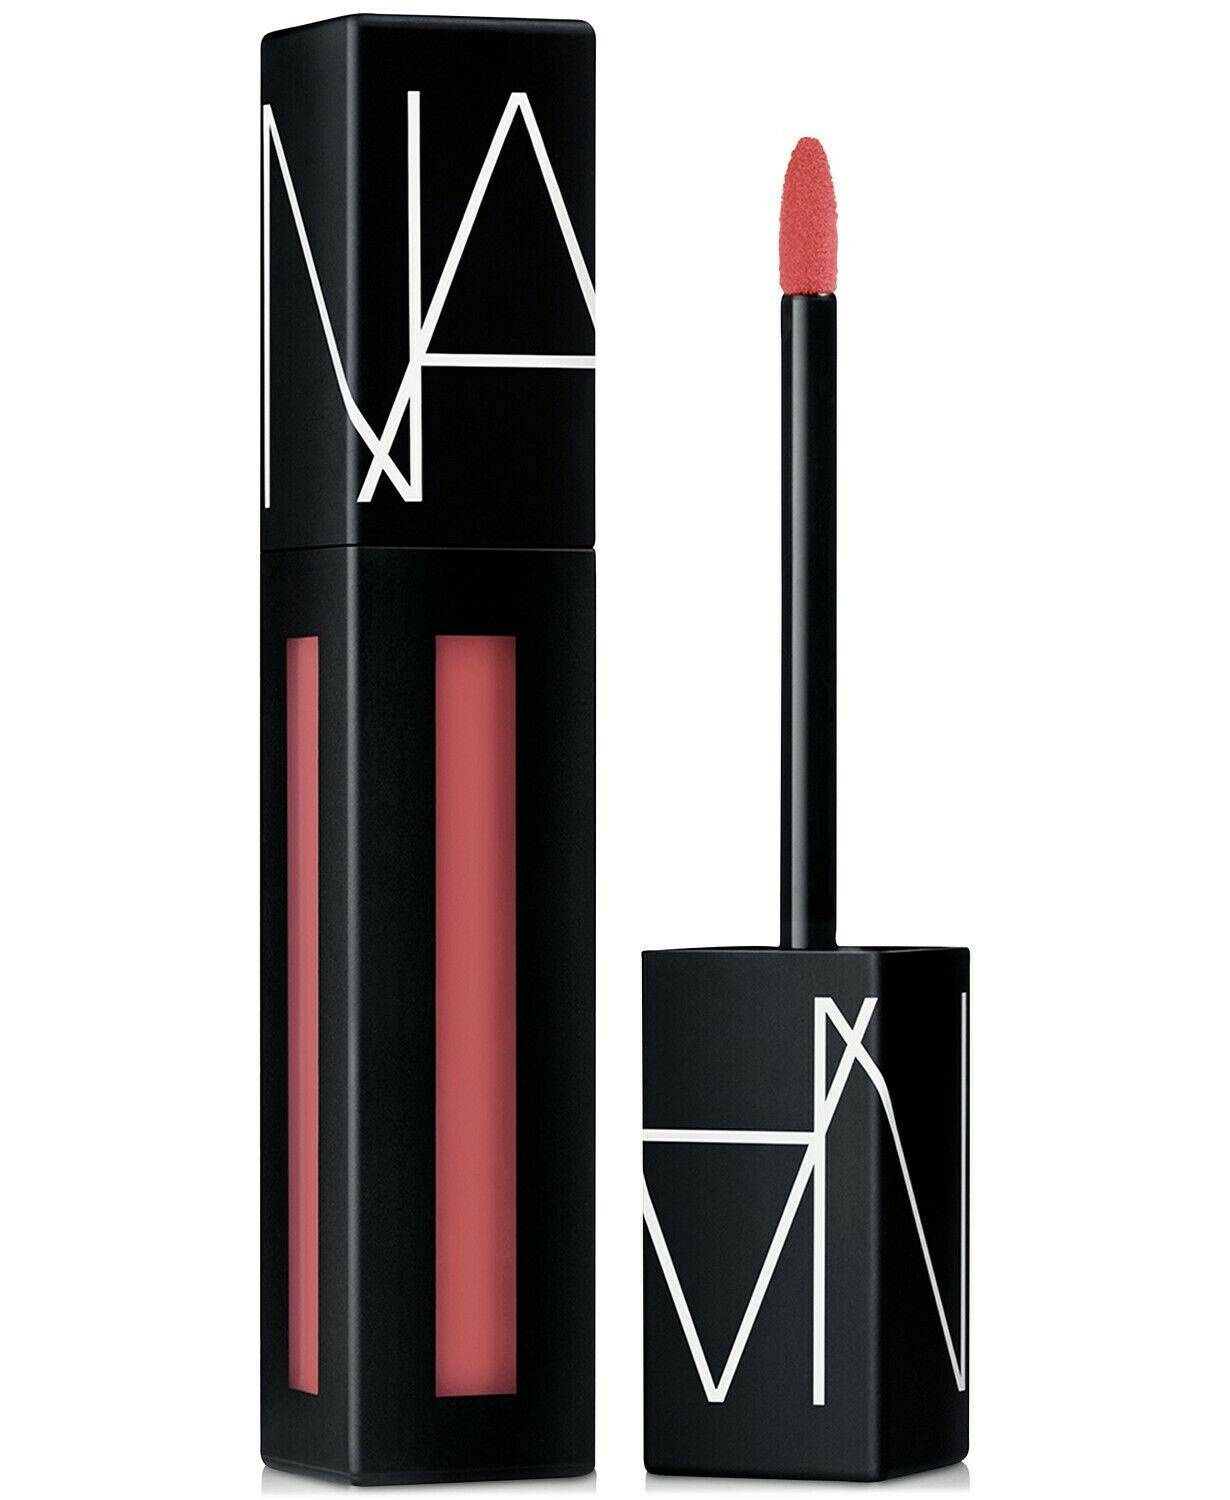 NARS PowerMatte Lip Pigment, Call Me, 0.18 oz